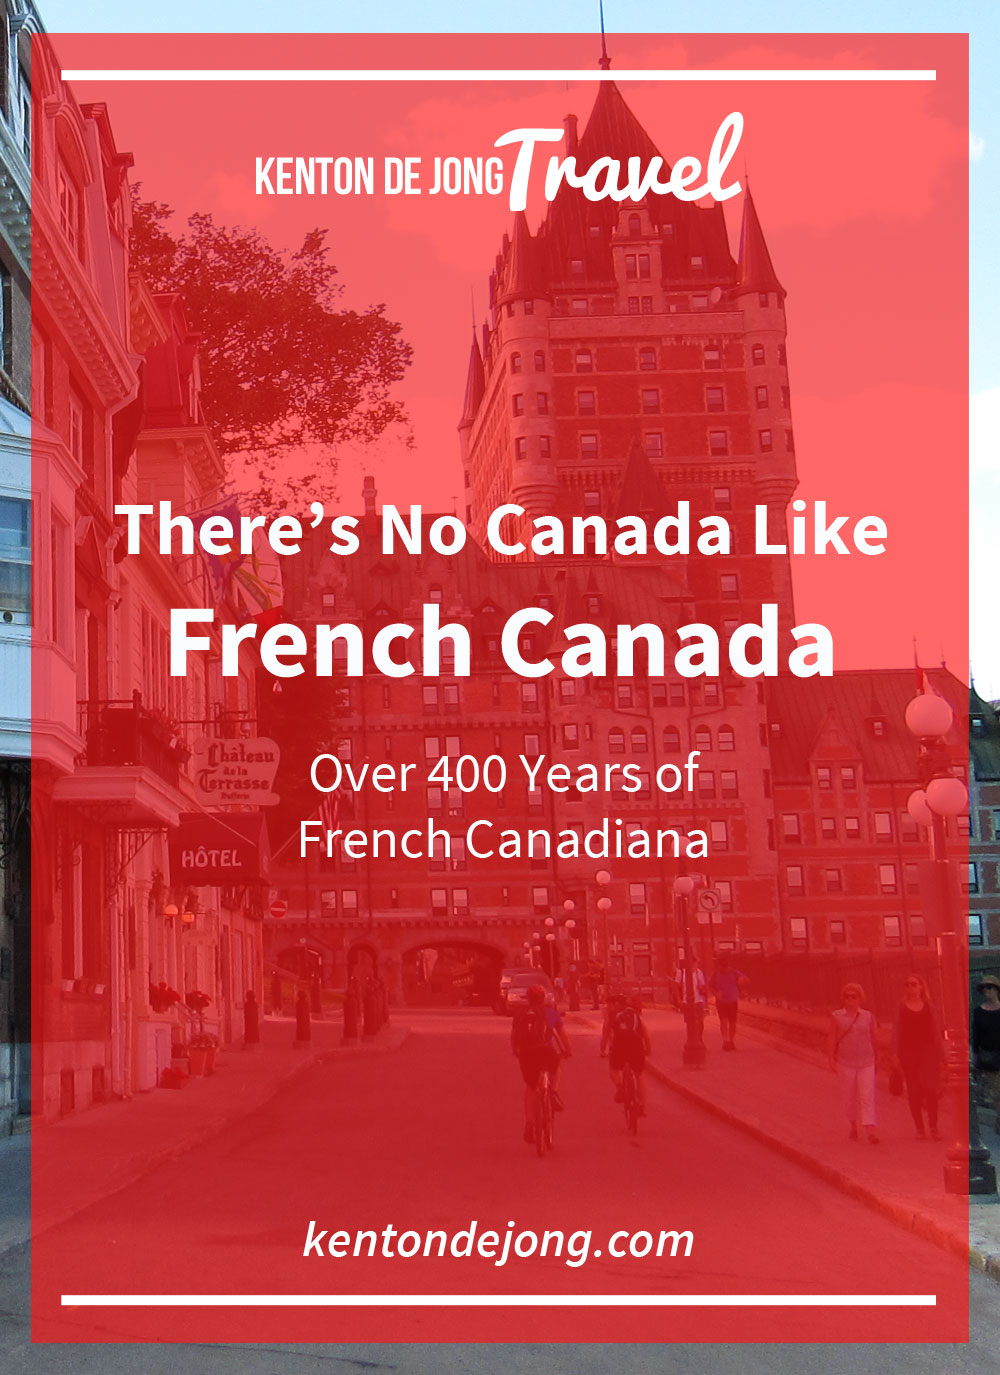 There's No Canada Like French Canada